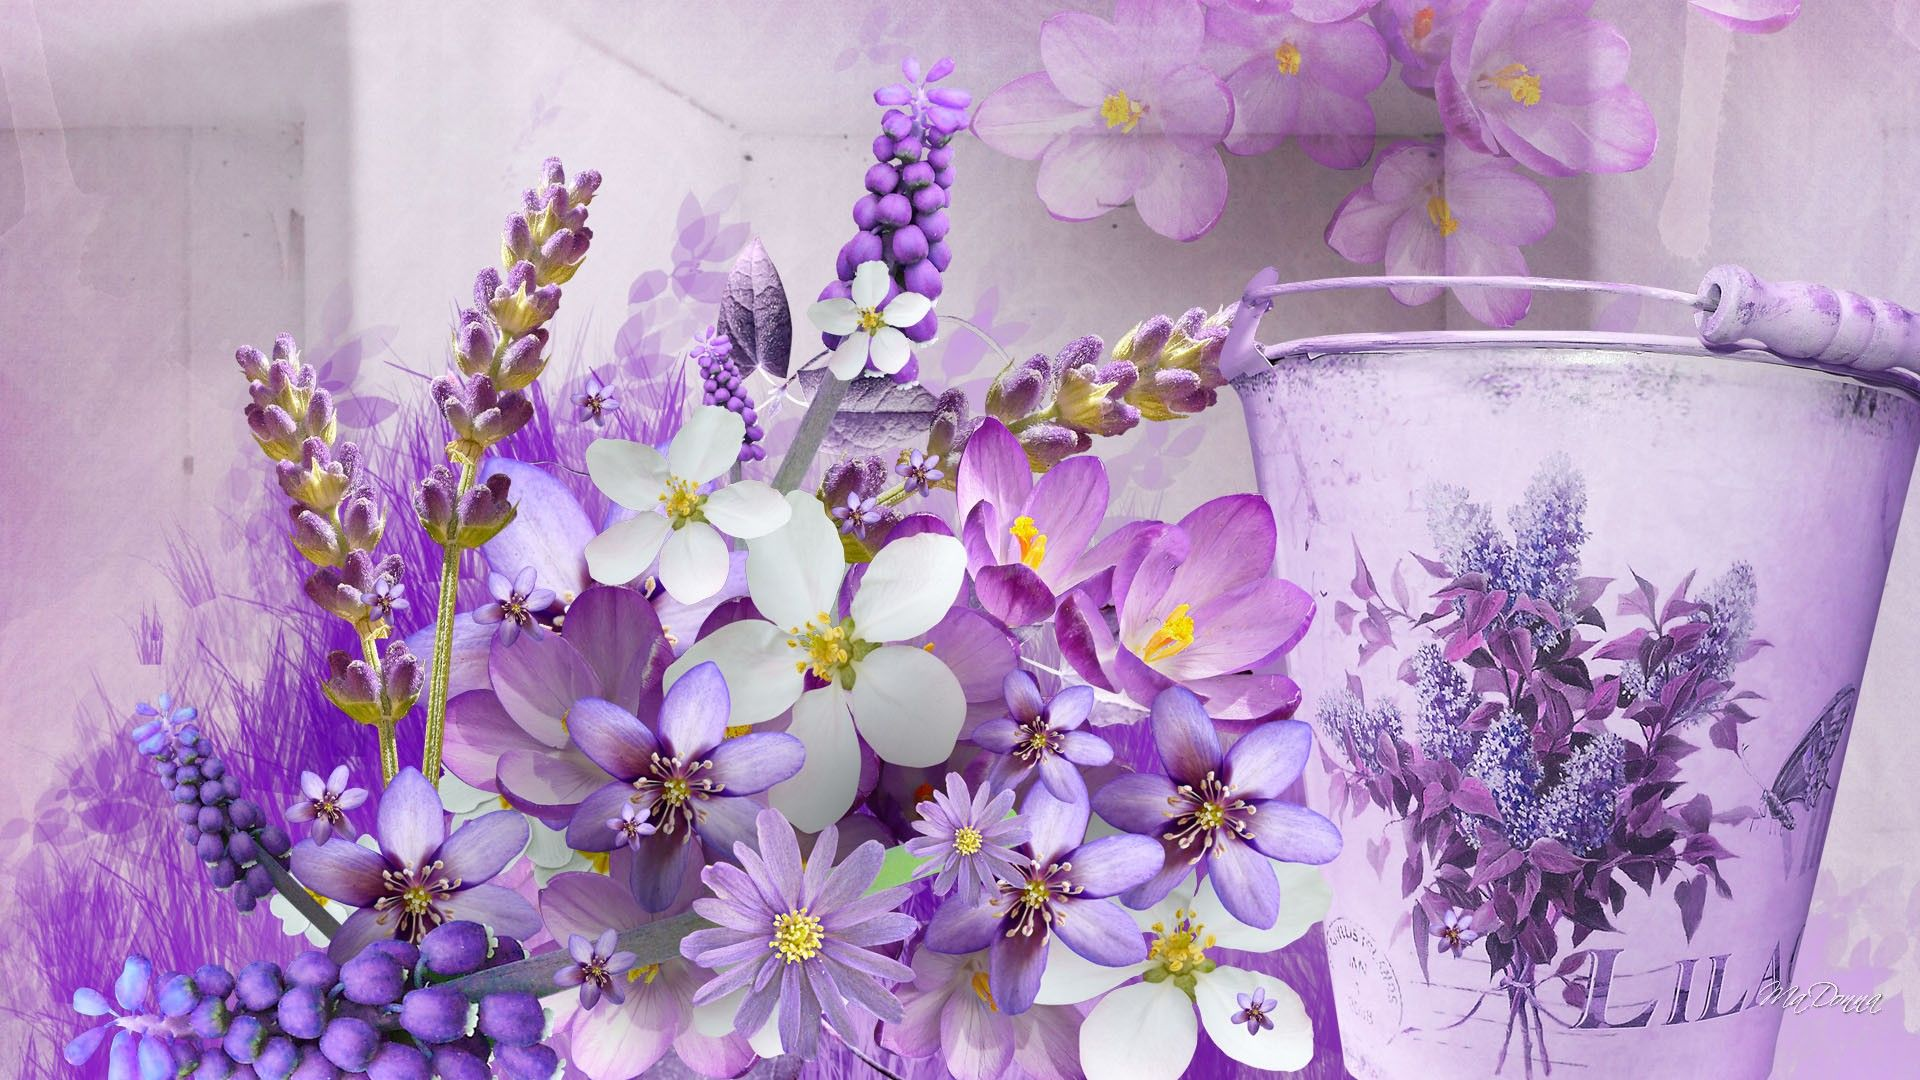 Read The Top 7 Lavender Oil Benefits Lavender Do It Yourself Recipes Lavender Lovely Facebook Cover Photos Vintage Spring Cover Photos Cover Pics For Facebook